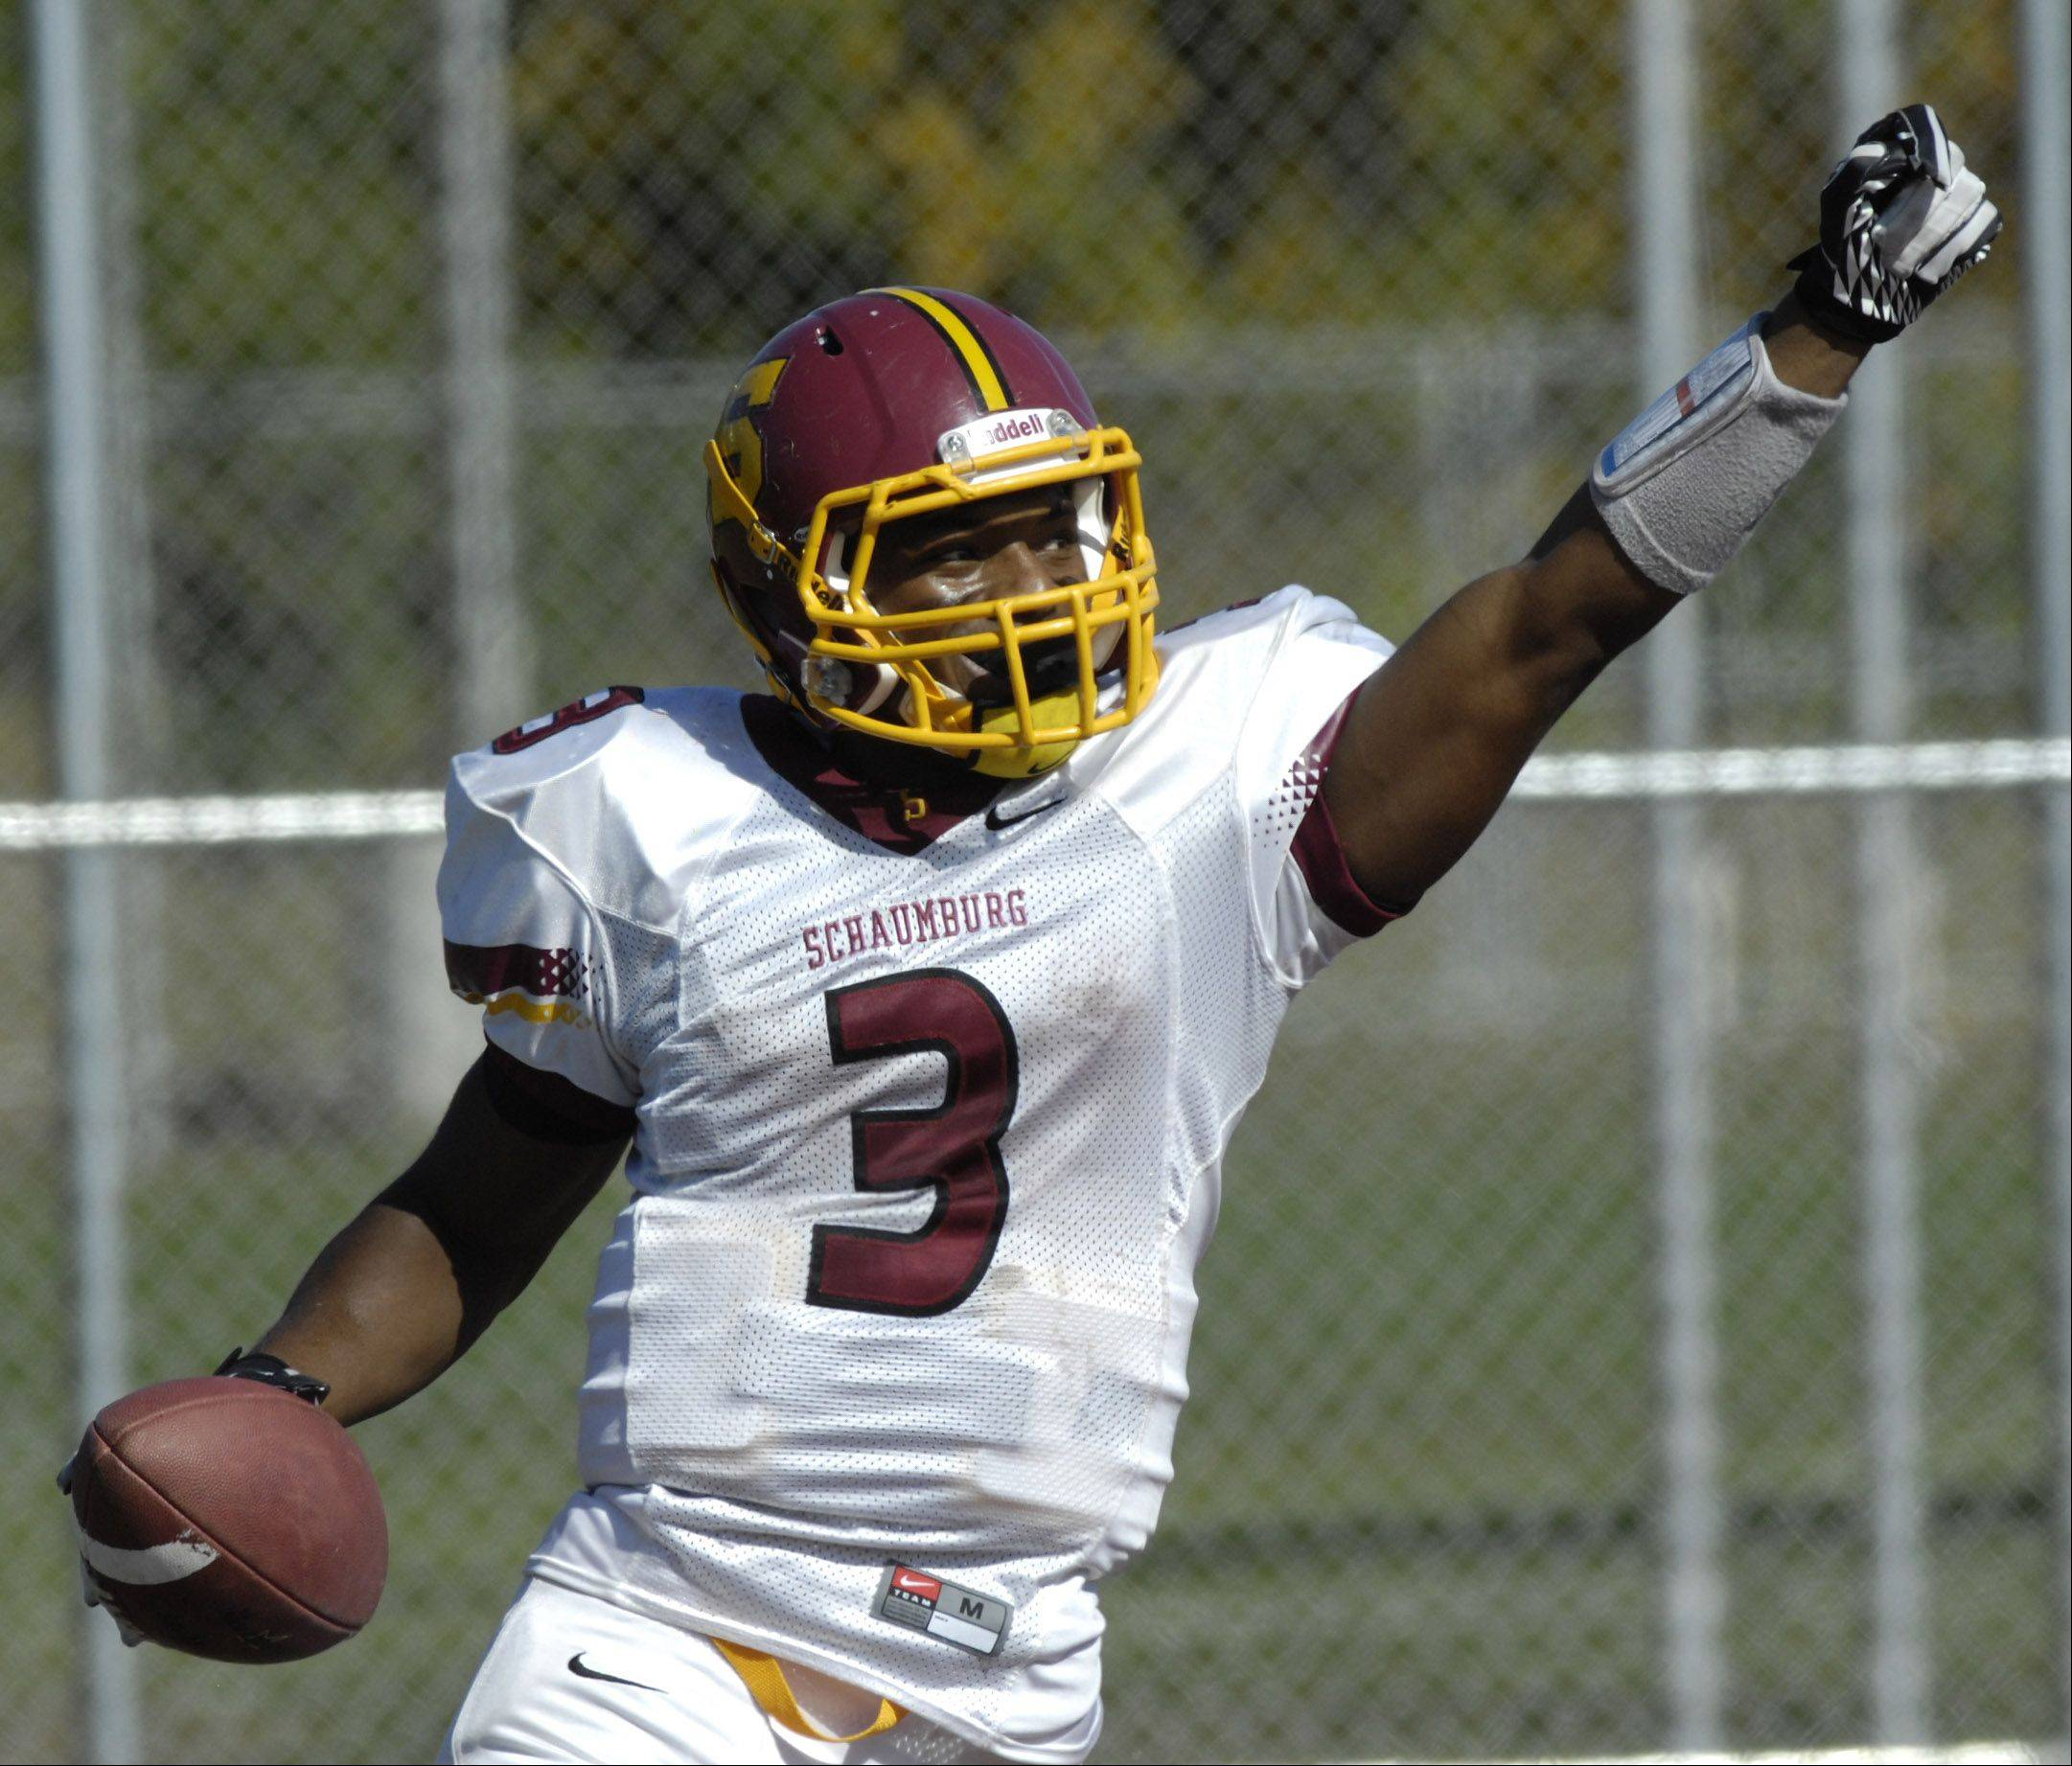 Schaumburg's Sadarriss Patterson celebrates his second-quarter touchdown in the Saxons' key MSL West victory over Barrington.